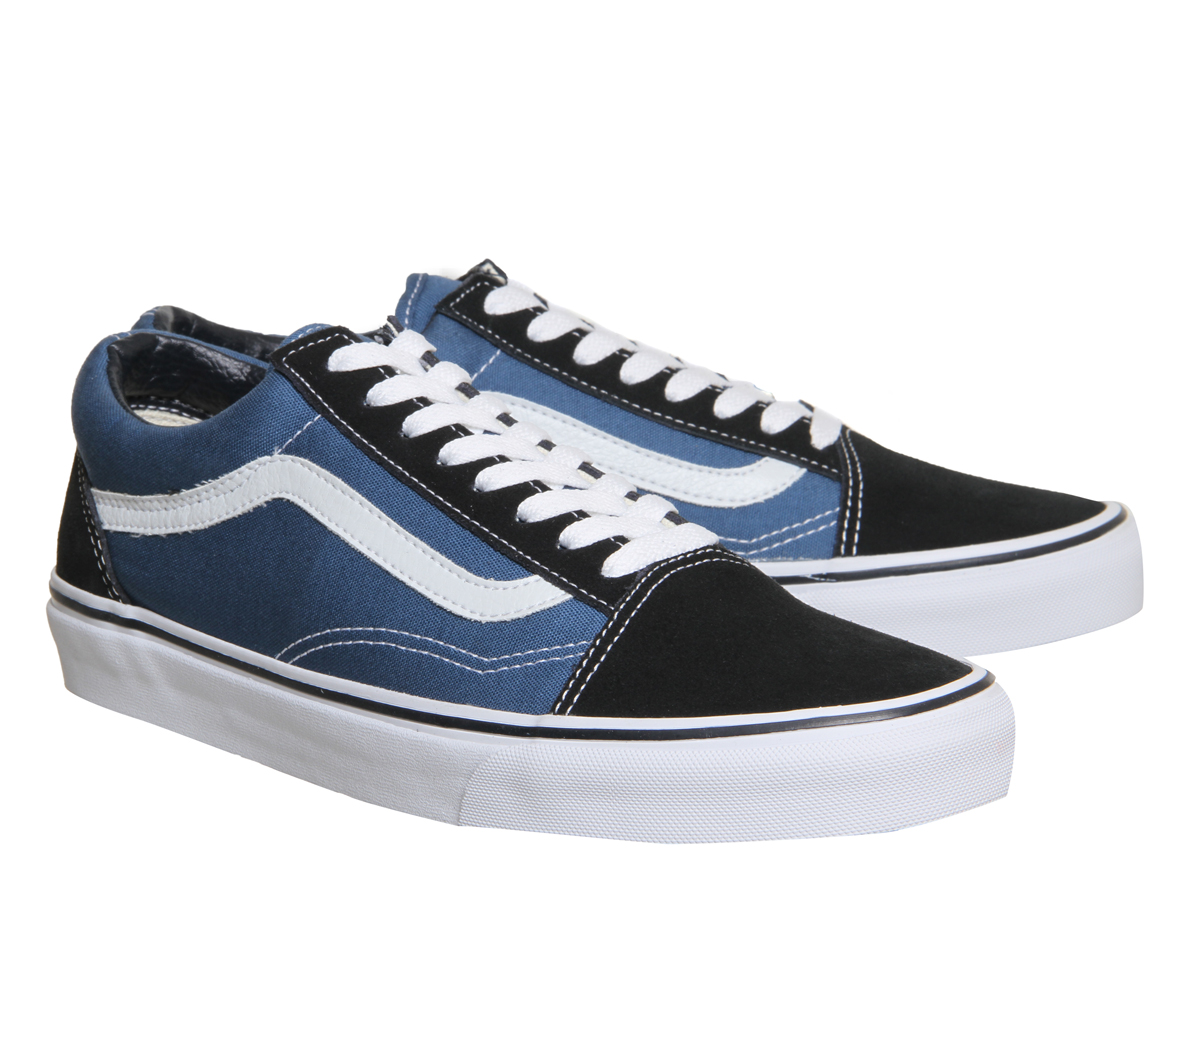 9f70927b494 Sentinel Mens Vans Old Skool Navy Trainers Shoes